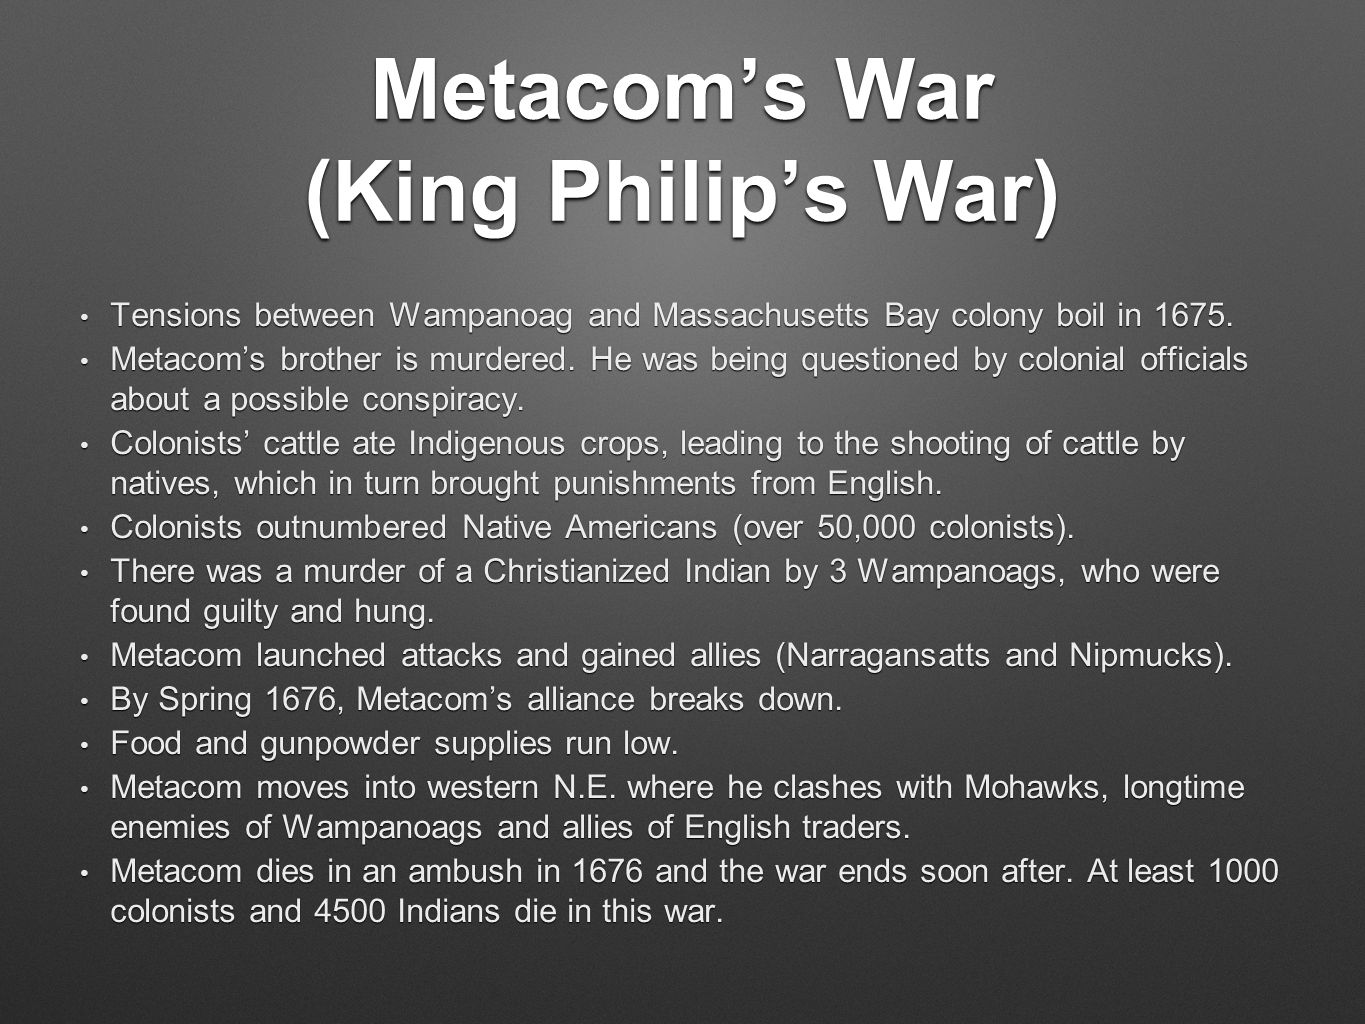 Metacom's War (King Philip's War) Tensions between Wampanoag and Massachusetts Bay colony boil in 1675. Tensions between Wampanoag and Massachusetts B